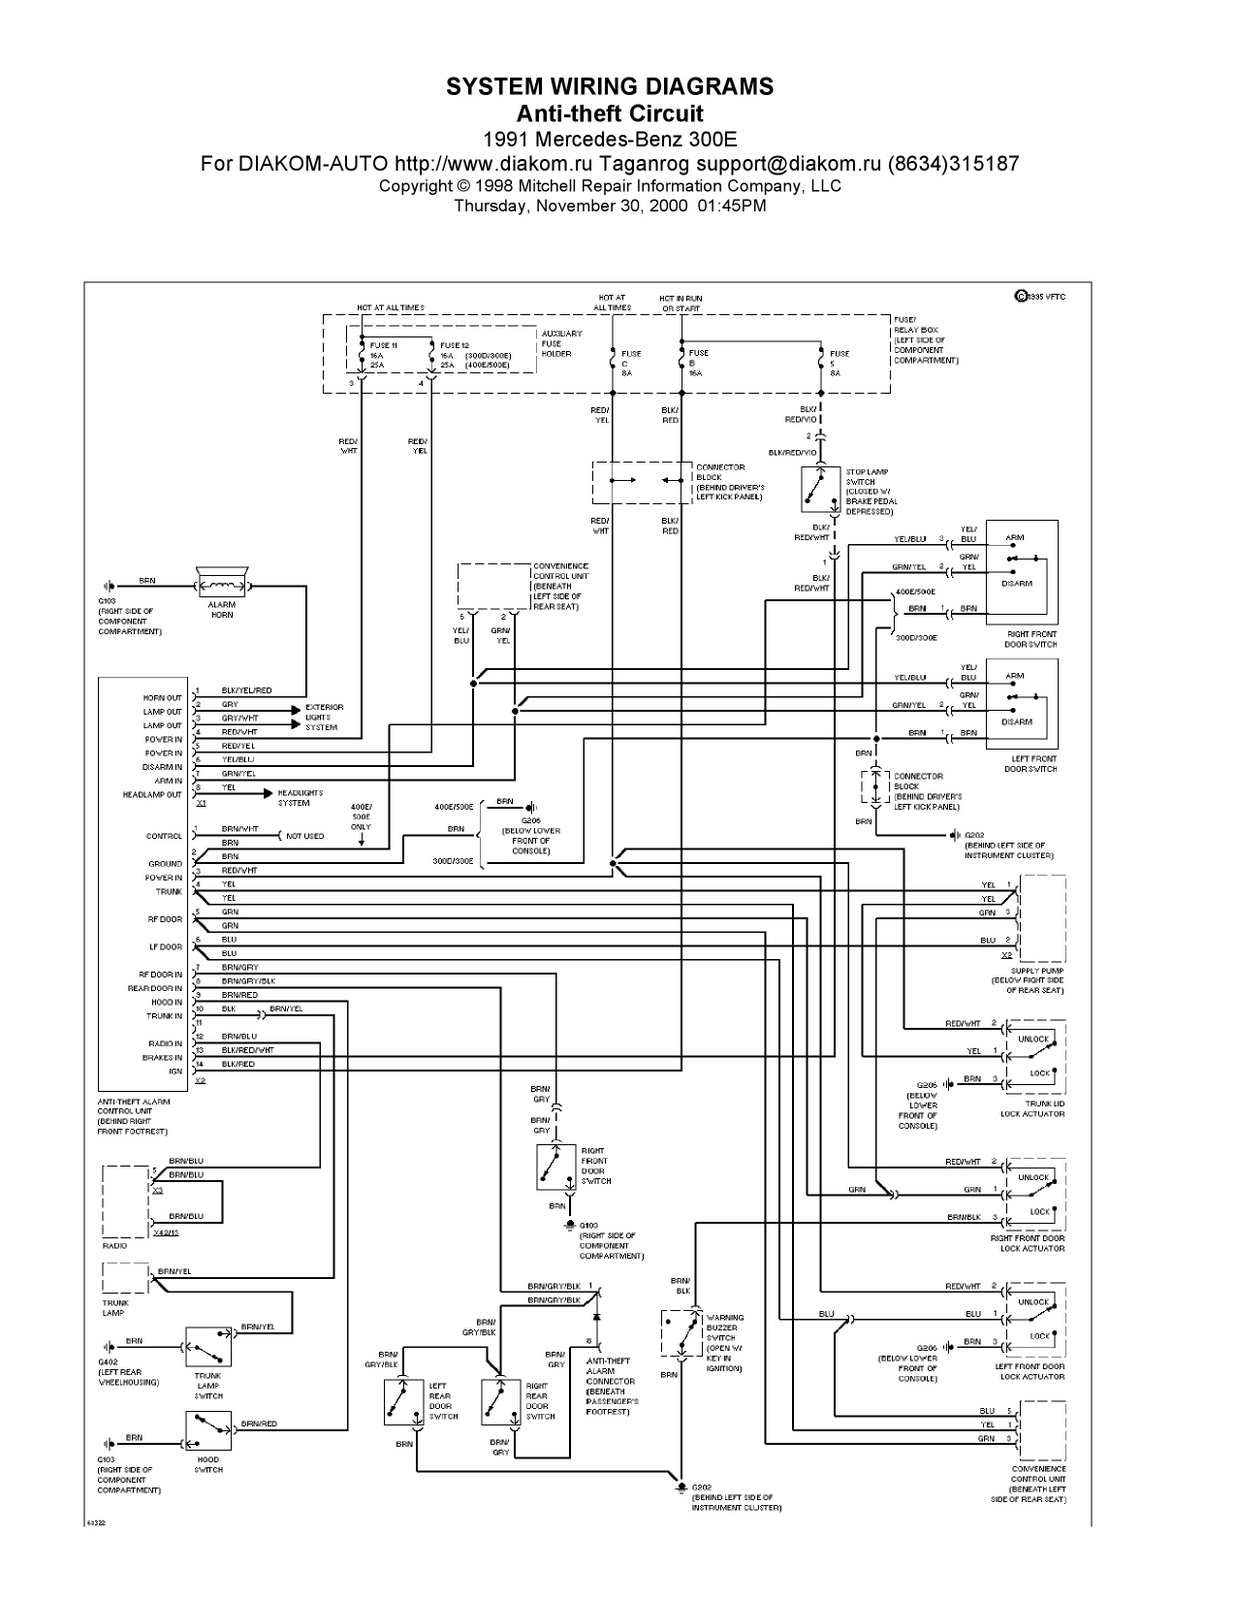 1991 MercedesBenz 300E System Wiring Diagrams Antitheft